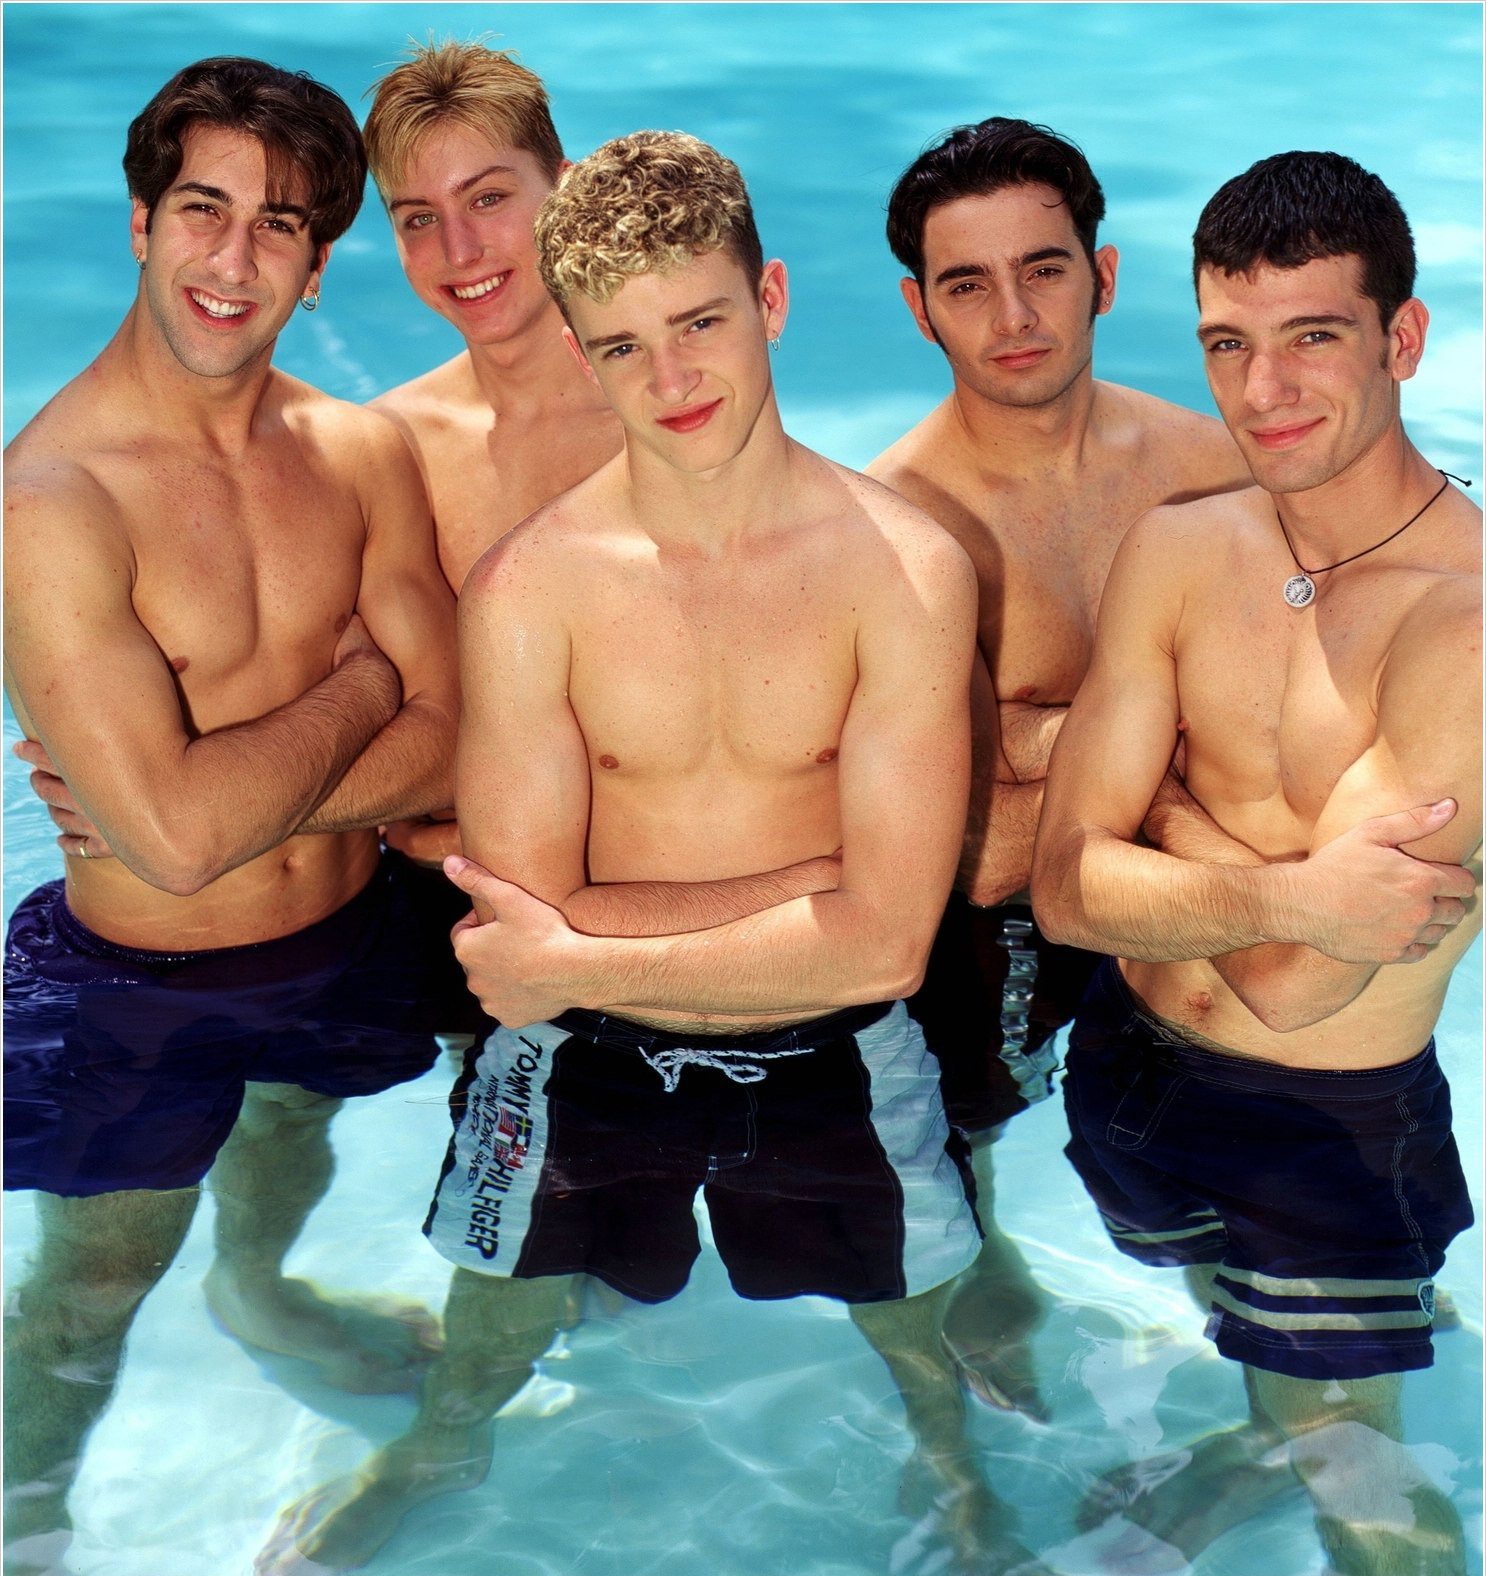 chestedness bare hottest moments the newnownext nsync history in boy band male bands